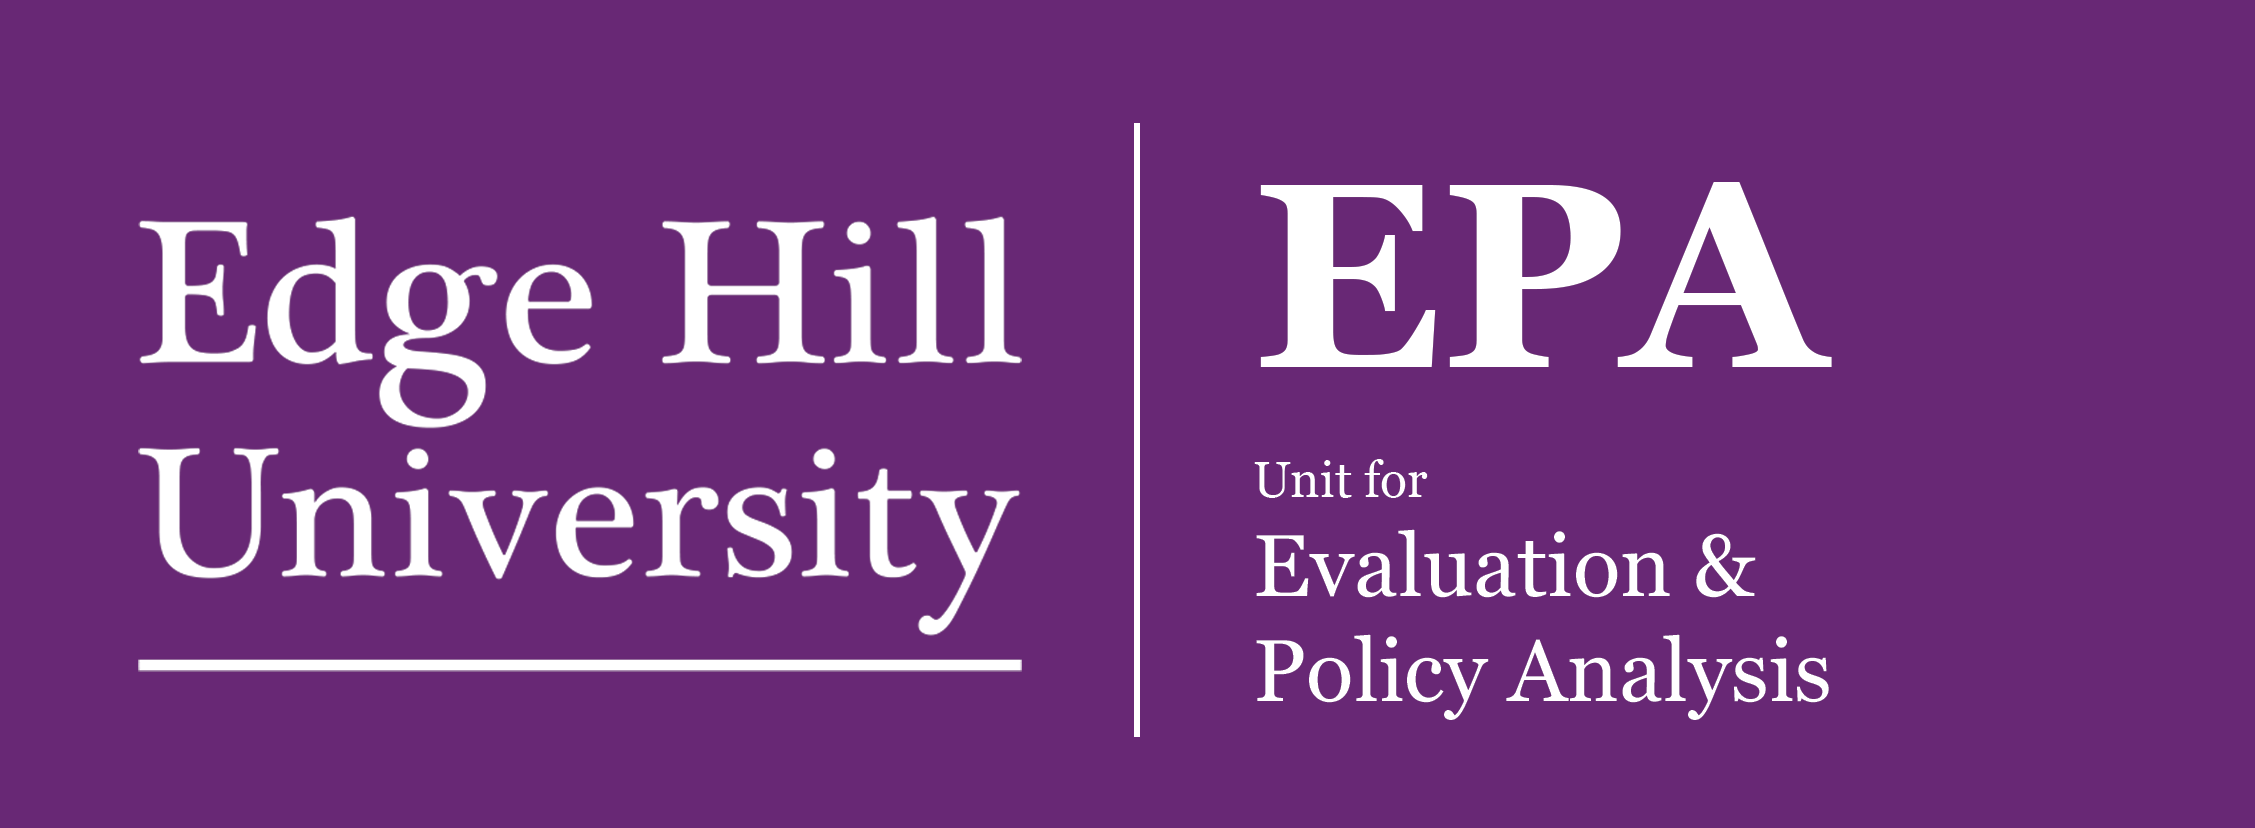 Evaluation and Policy Analysis Research Unit logo